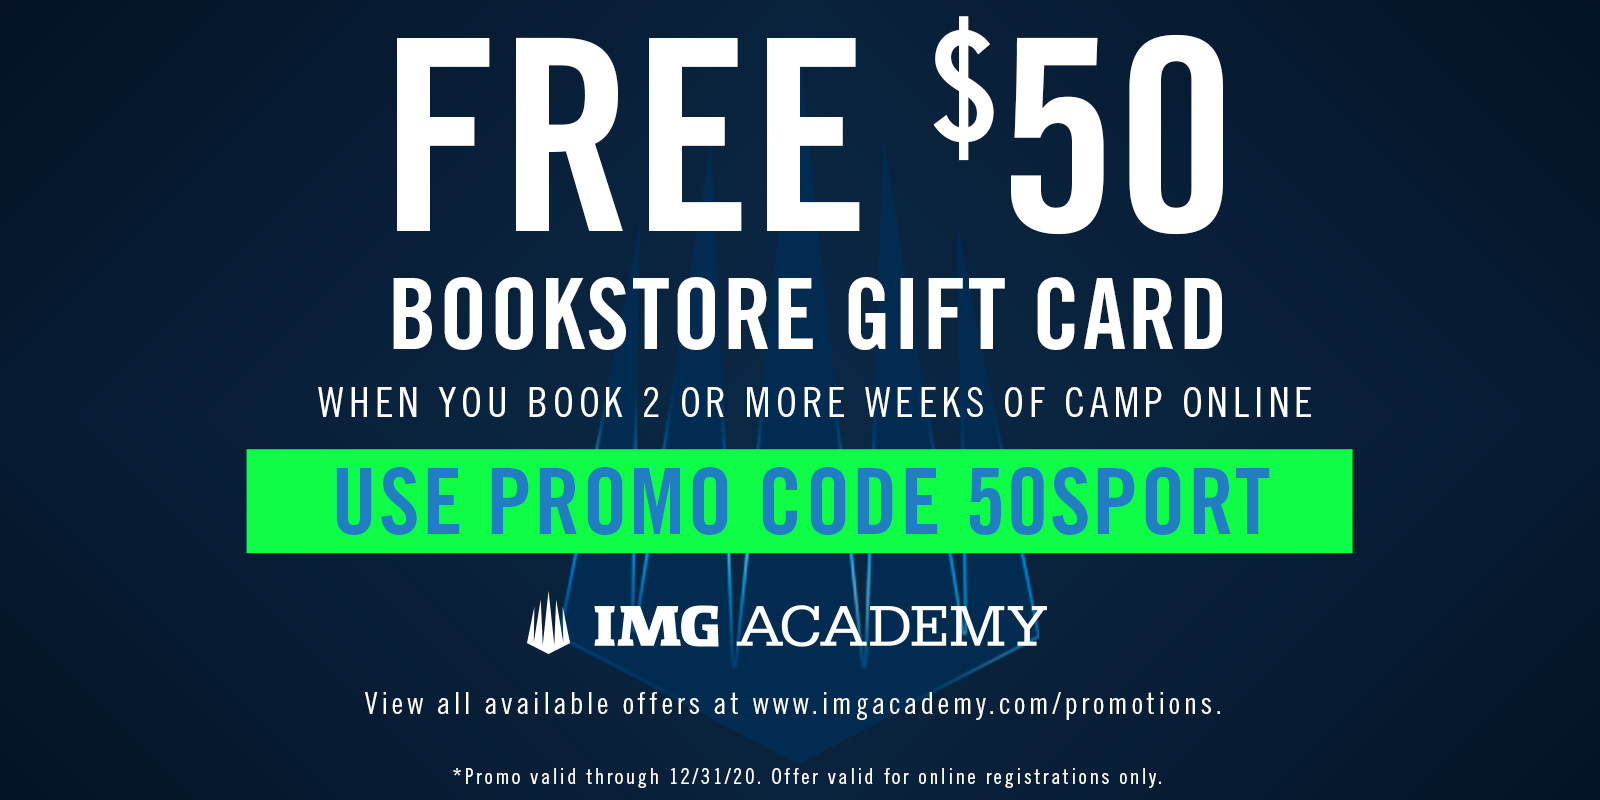 Free $50 Bookstore Giftcard. Use promo code 50SPORT